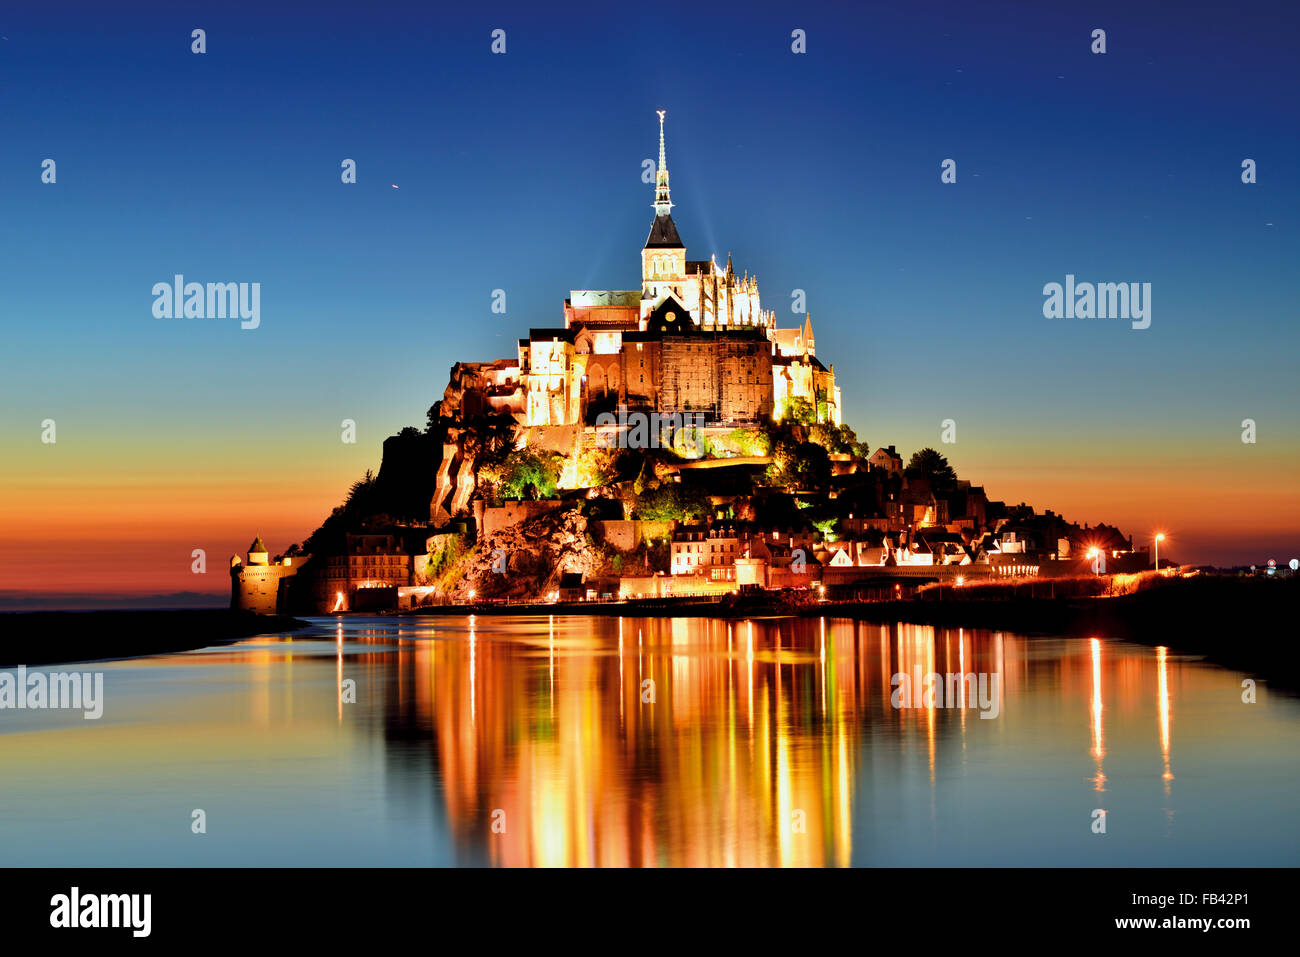 France, Normandy: Scenic nocturnal view of Le Mont Saint Michel Stock Photo